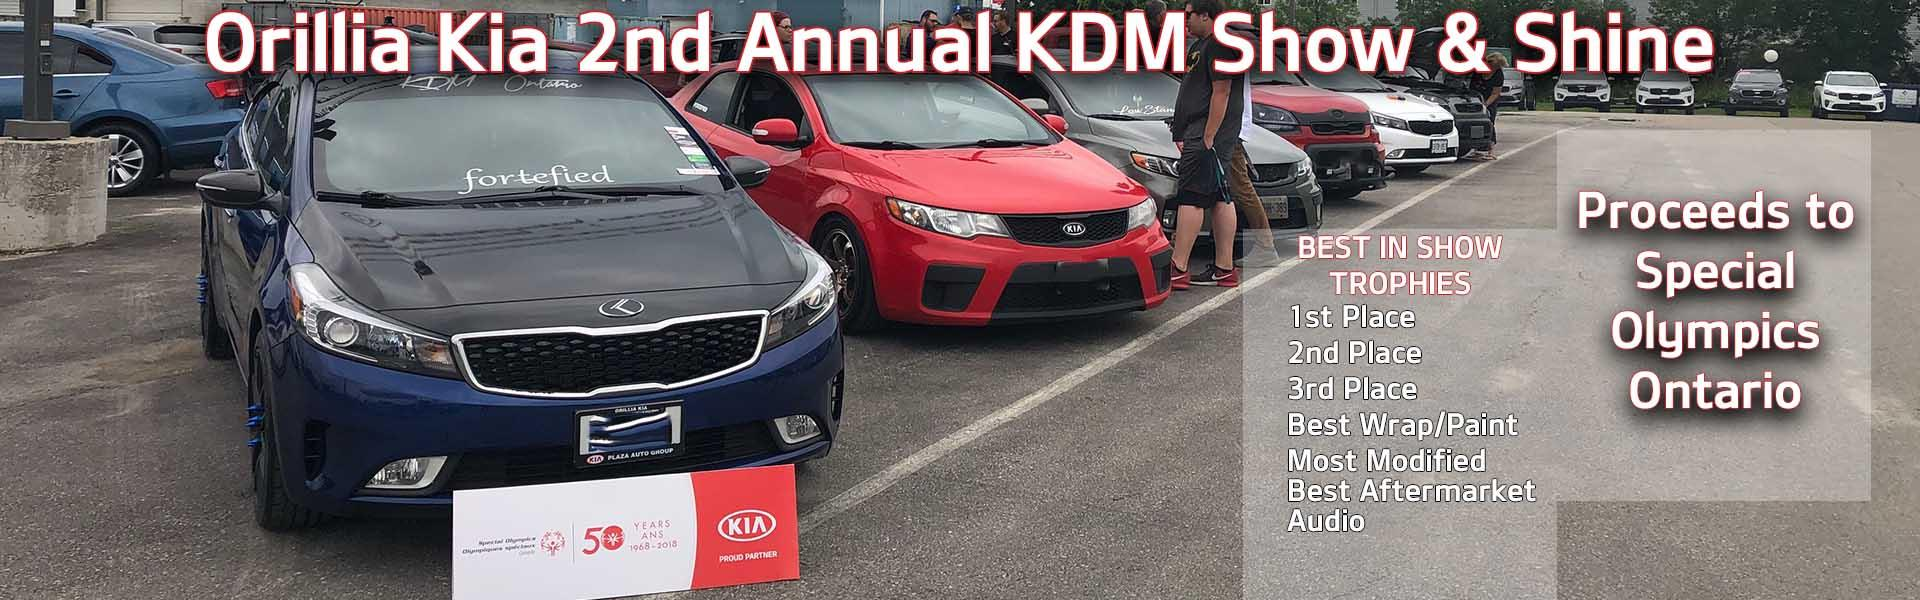 Orillia Kia 2nd Annual KDM Show & Shine